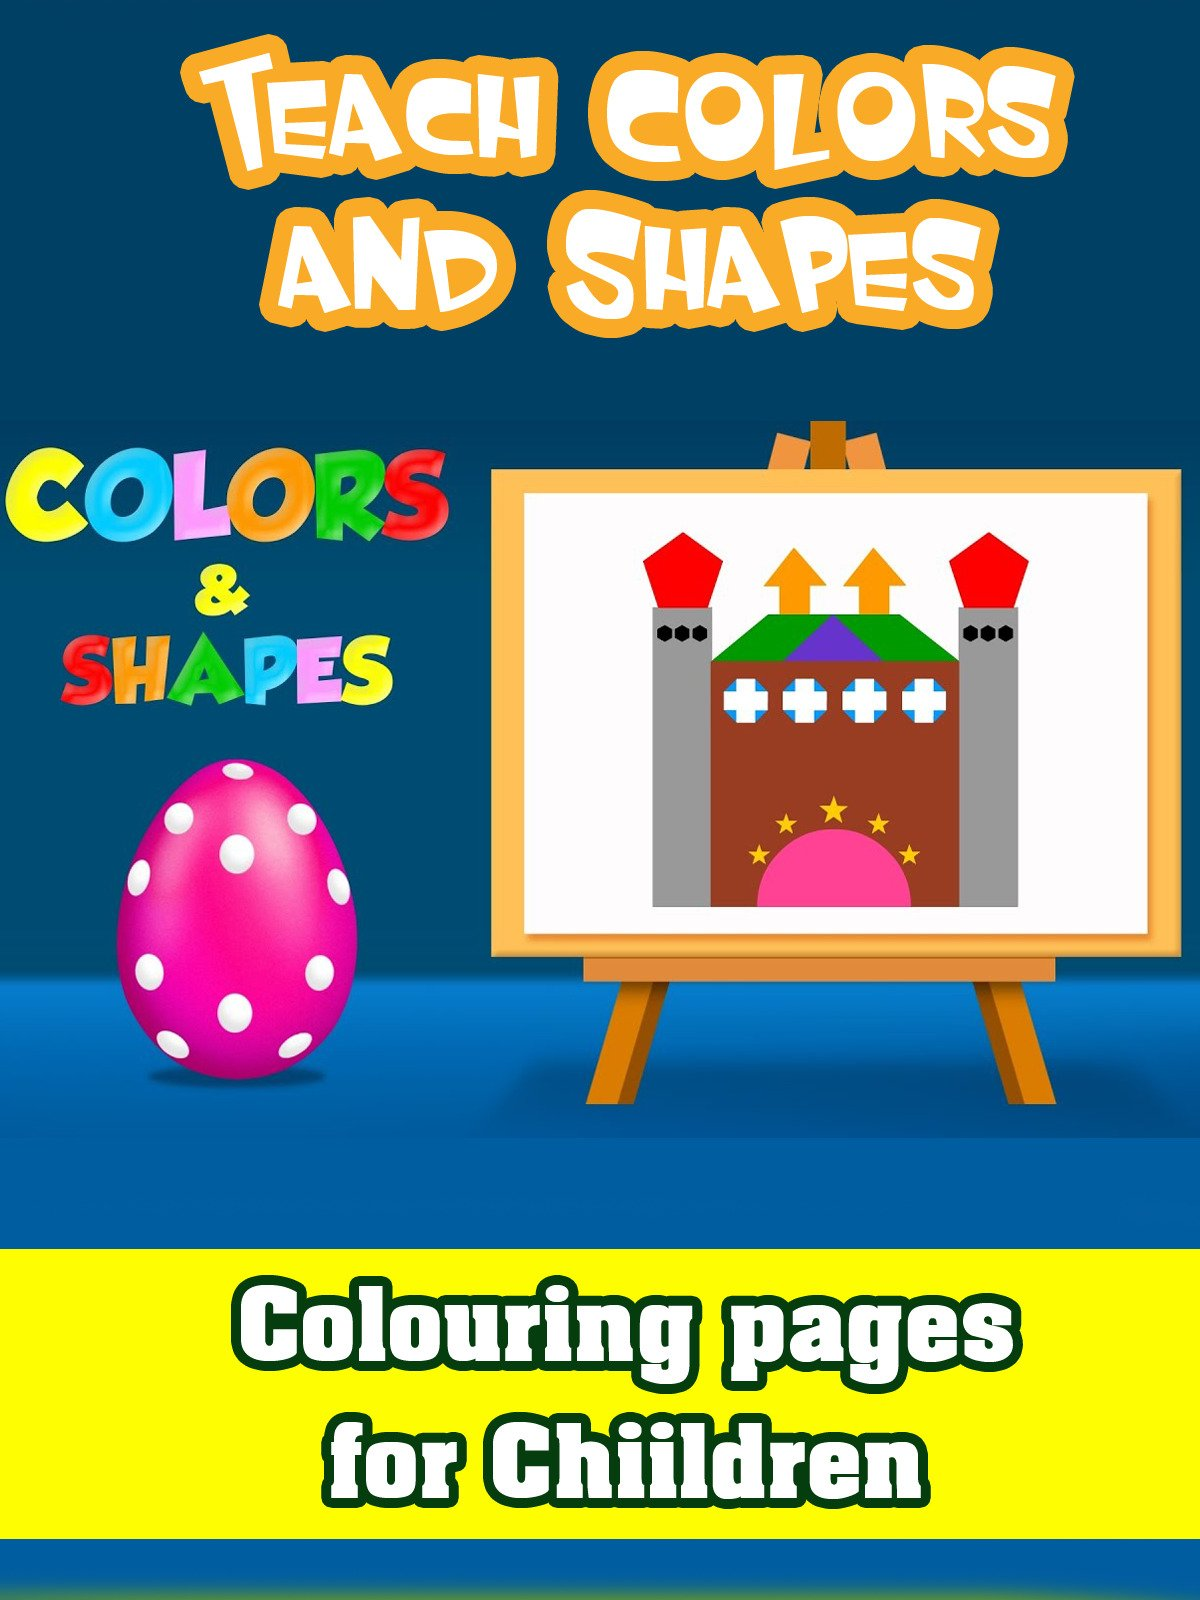 Teach Colors and Shapes